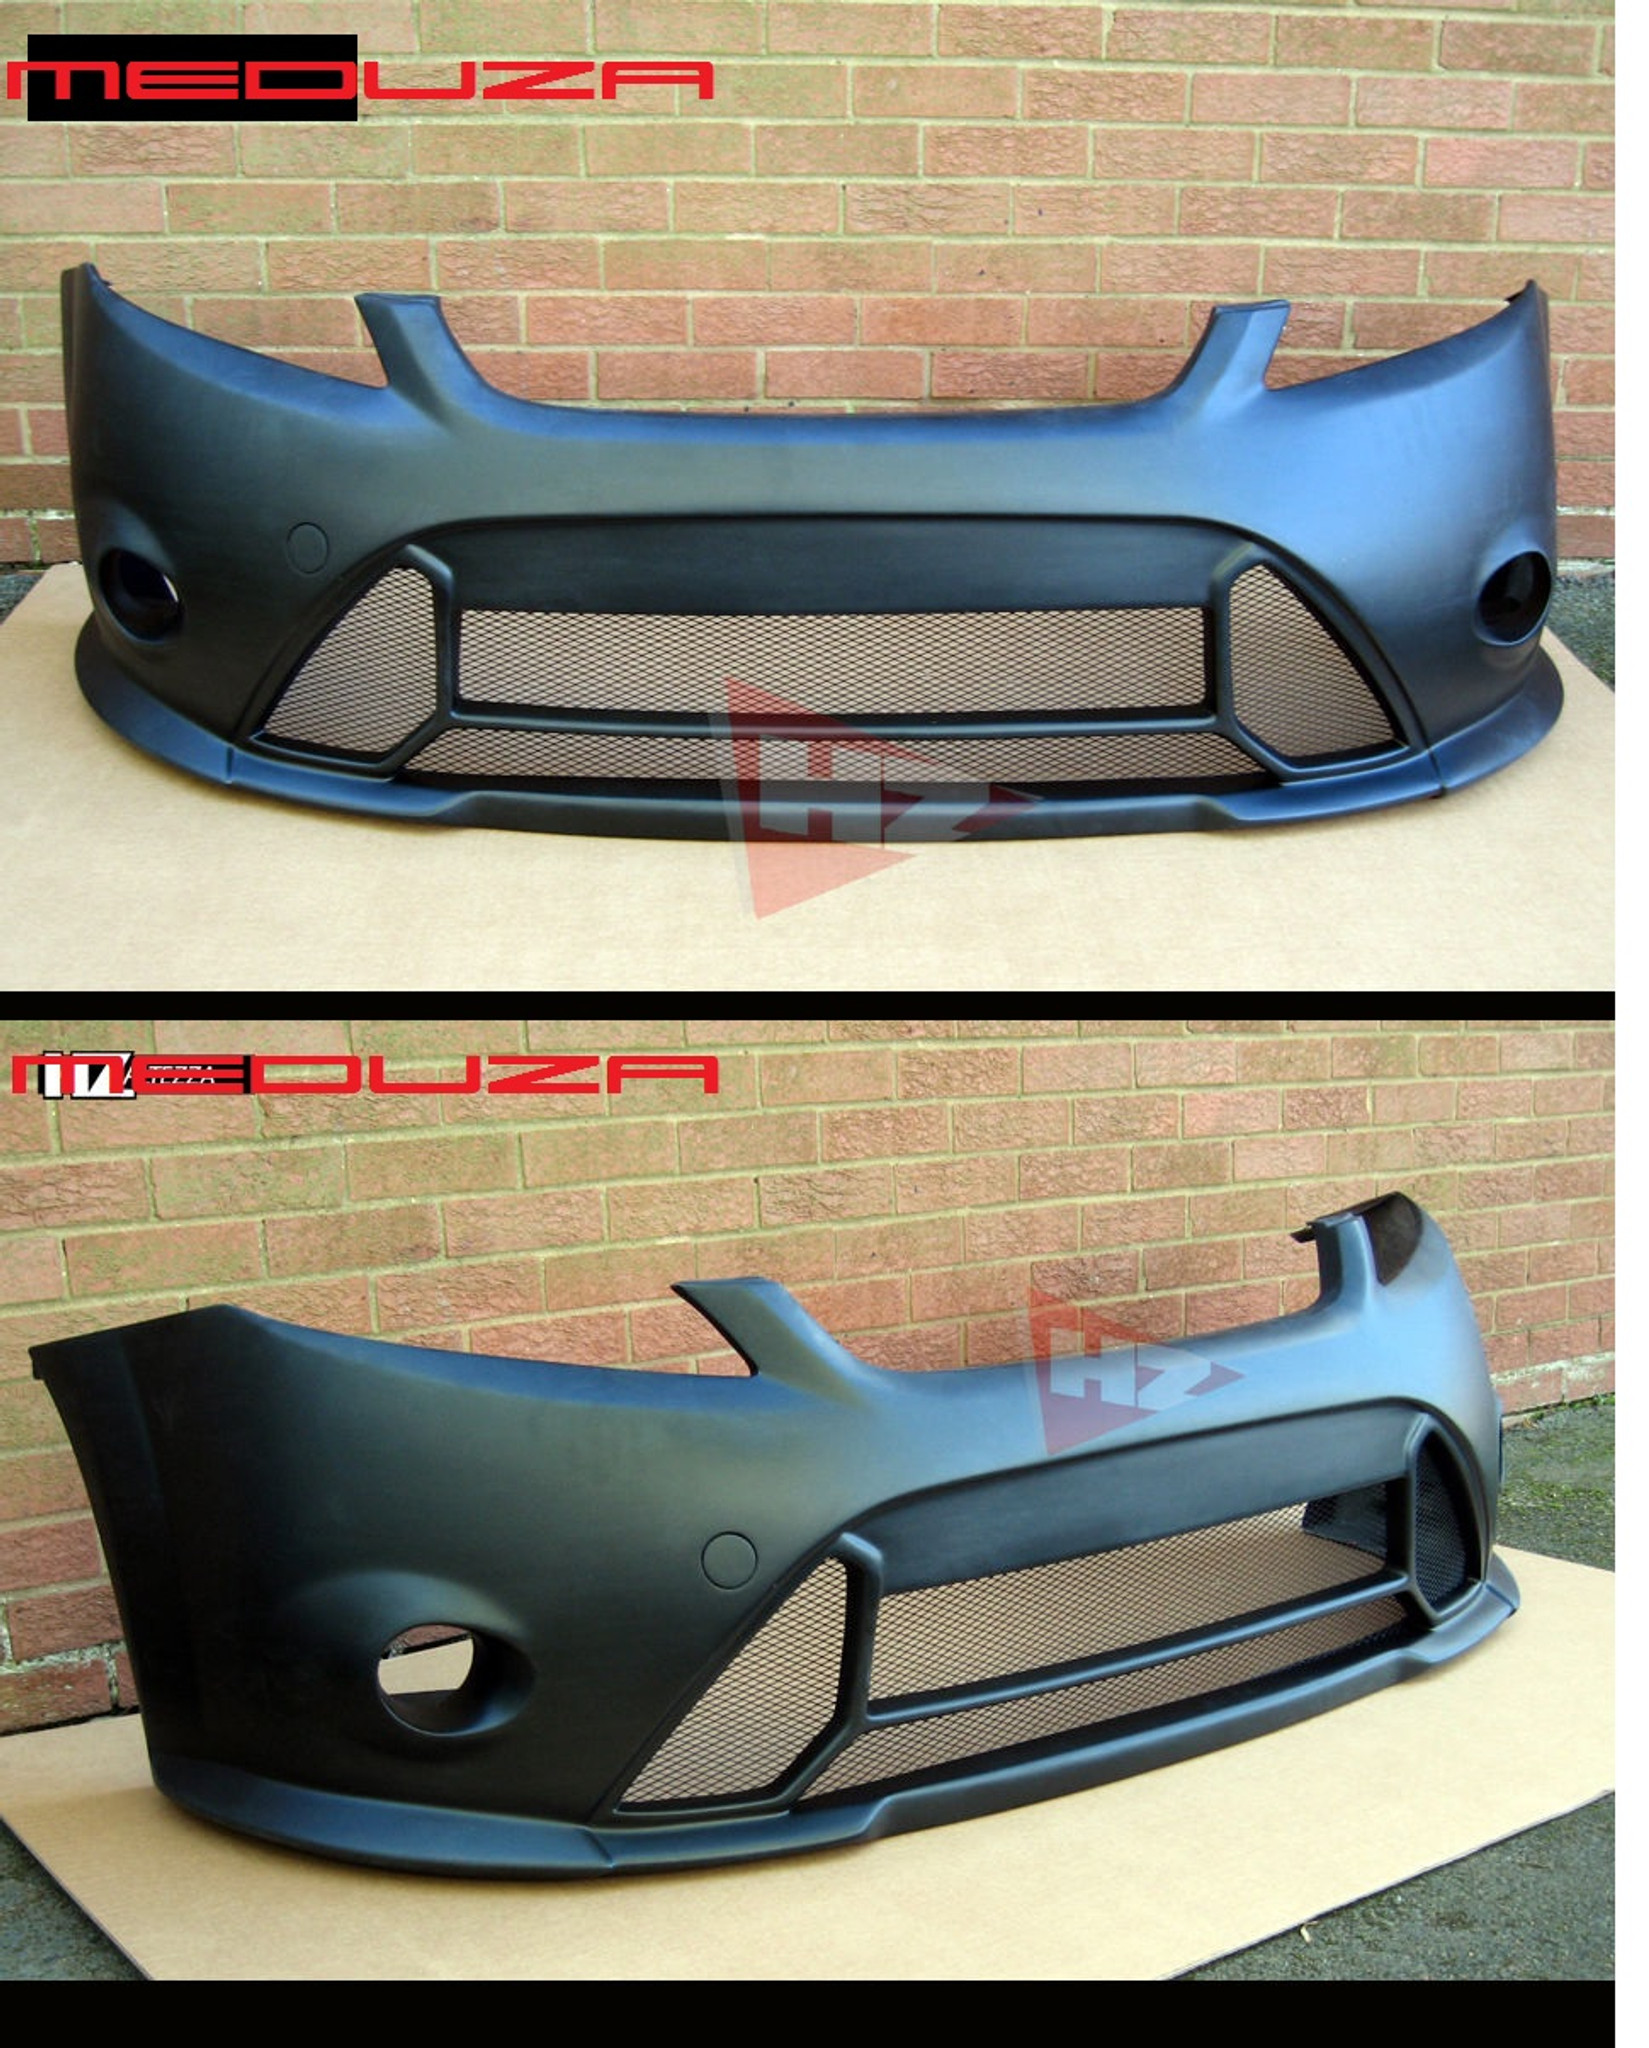 Ford Focus Rs Type Front Bumper 2009 2012 Models Bodykit